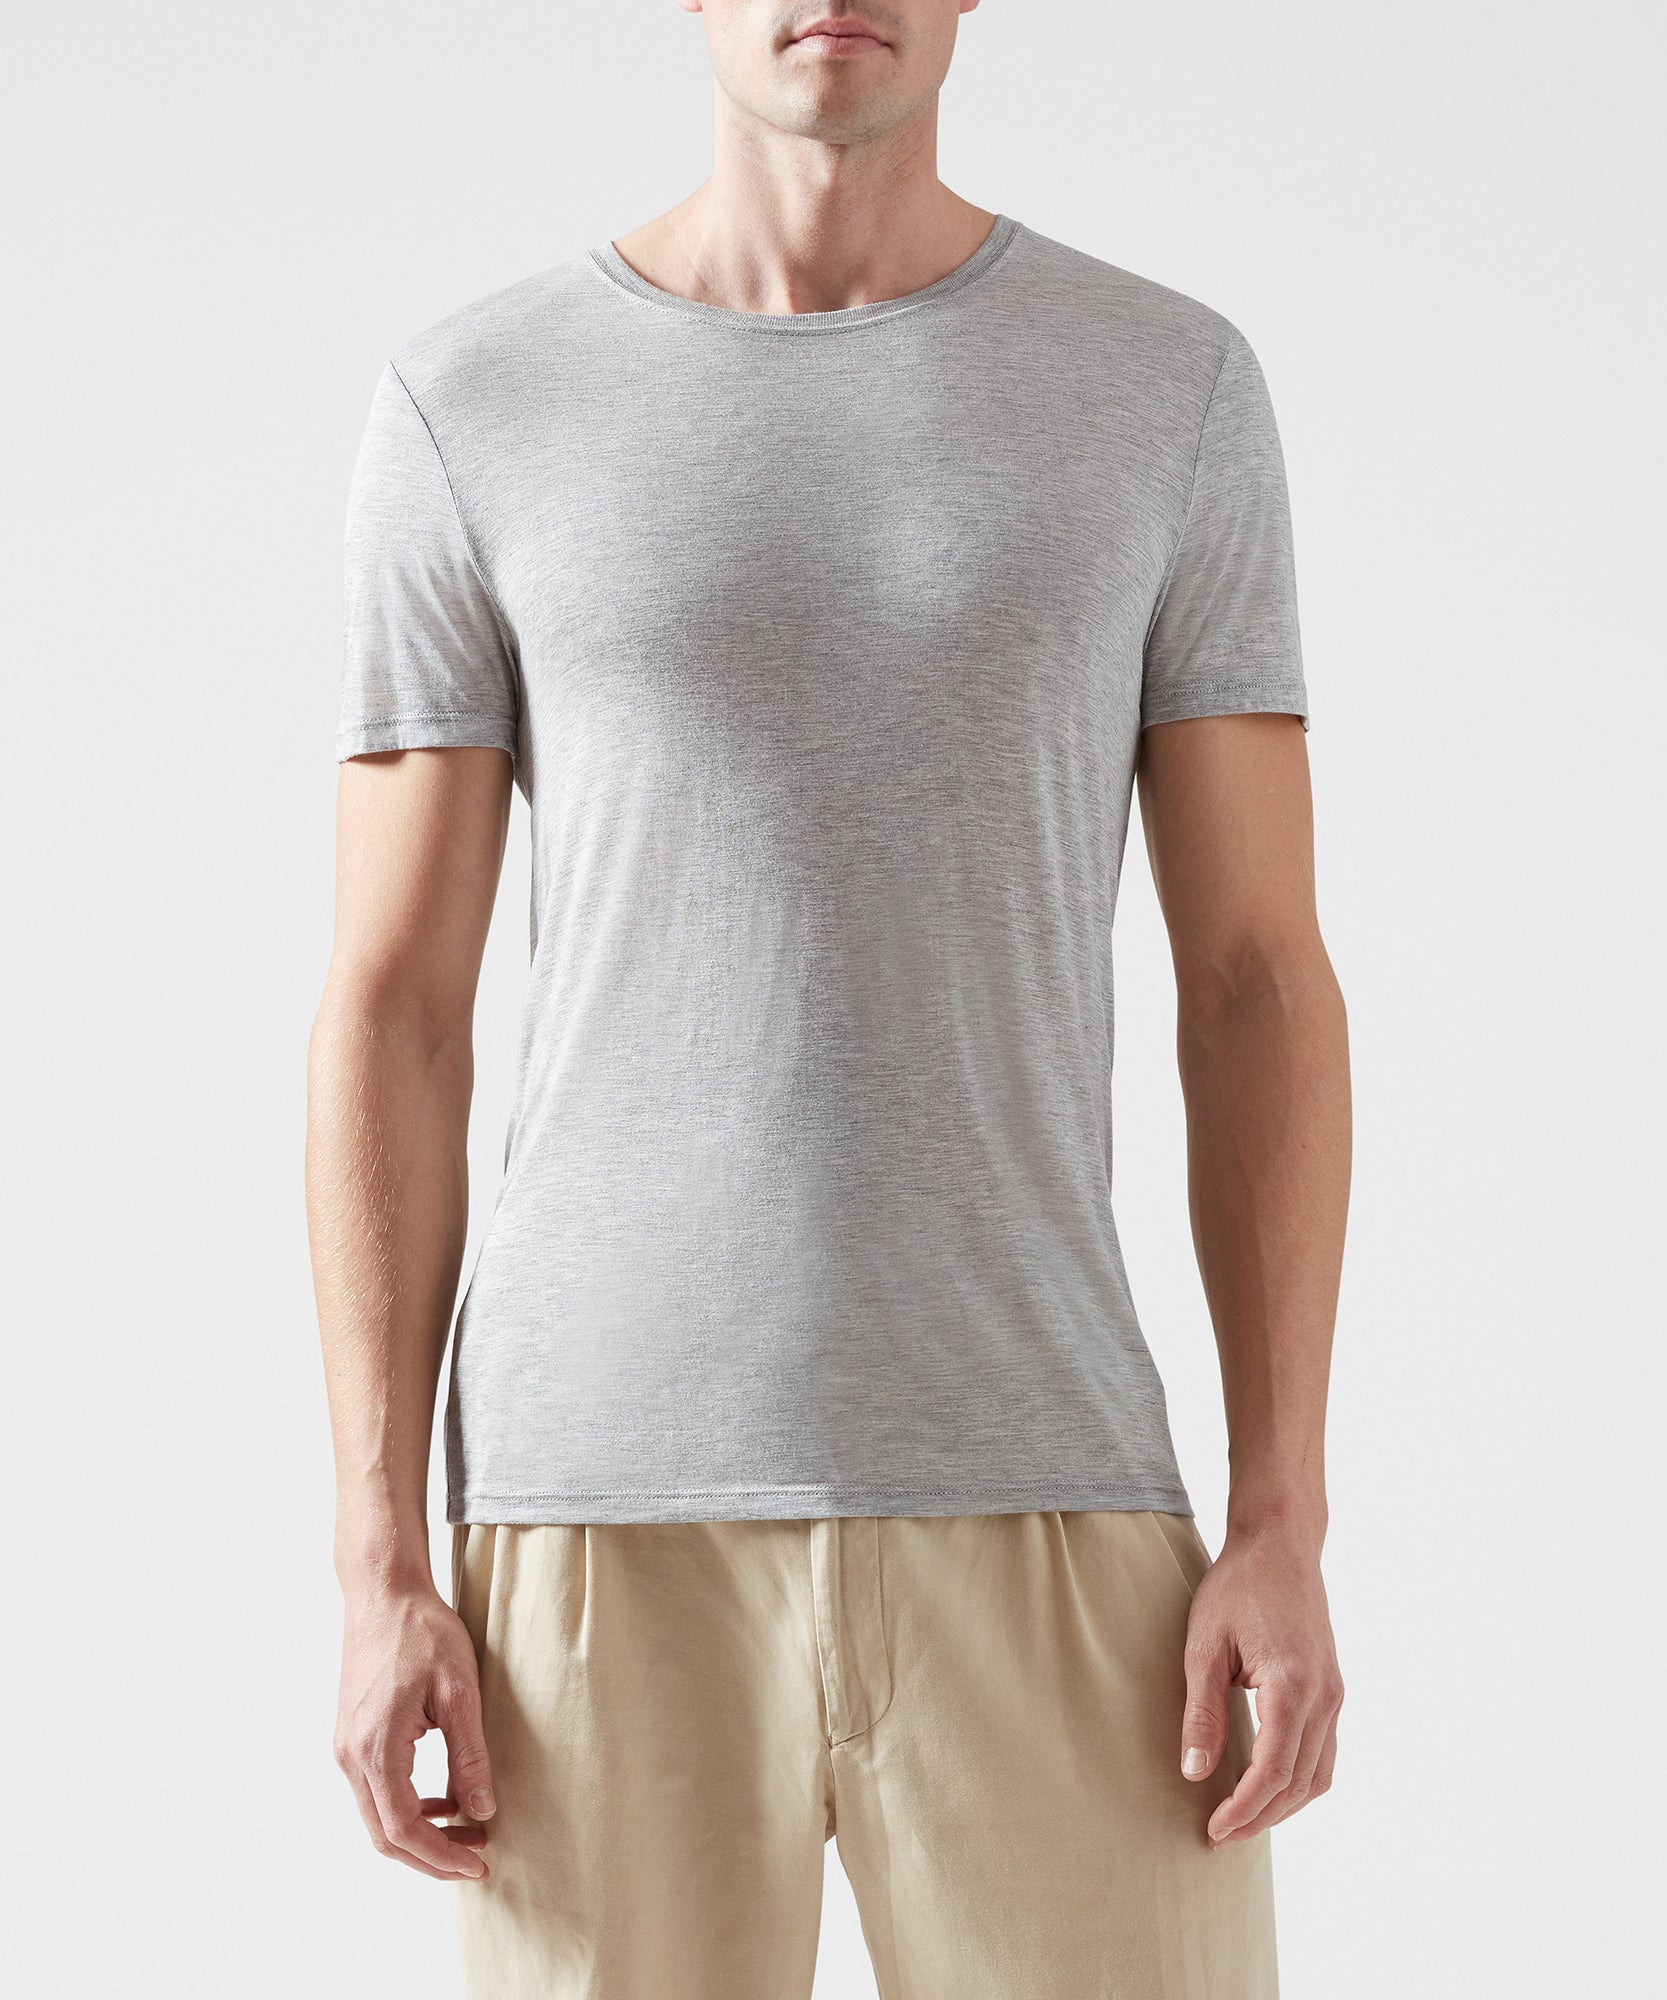 Heather Grey Modal Jersey Crew Neck Tee - Men's Jersey Short Sleeve Tee by ATM Anthony Thomas Melillo